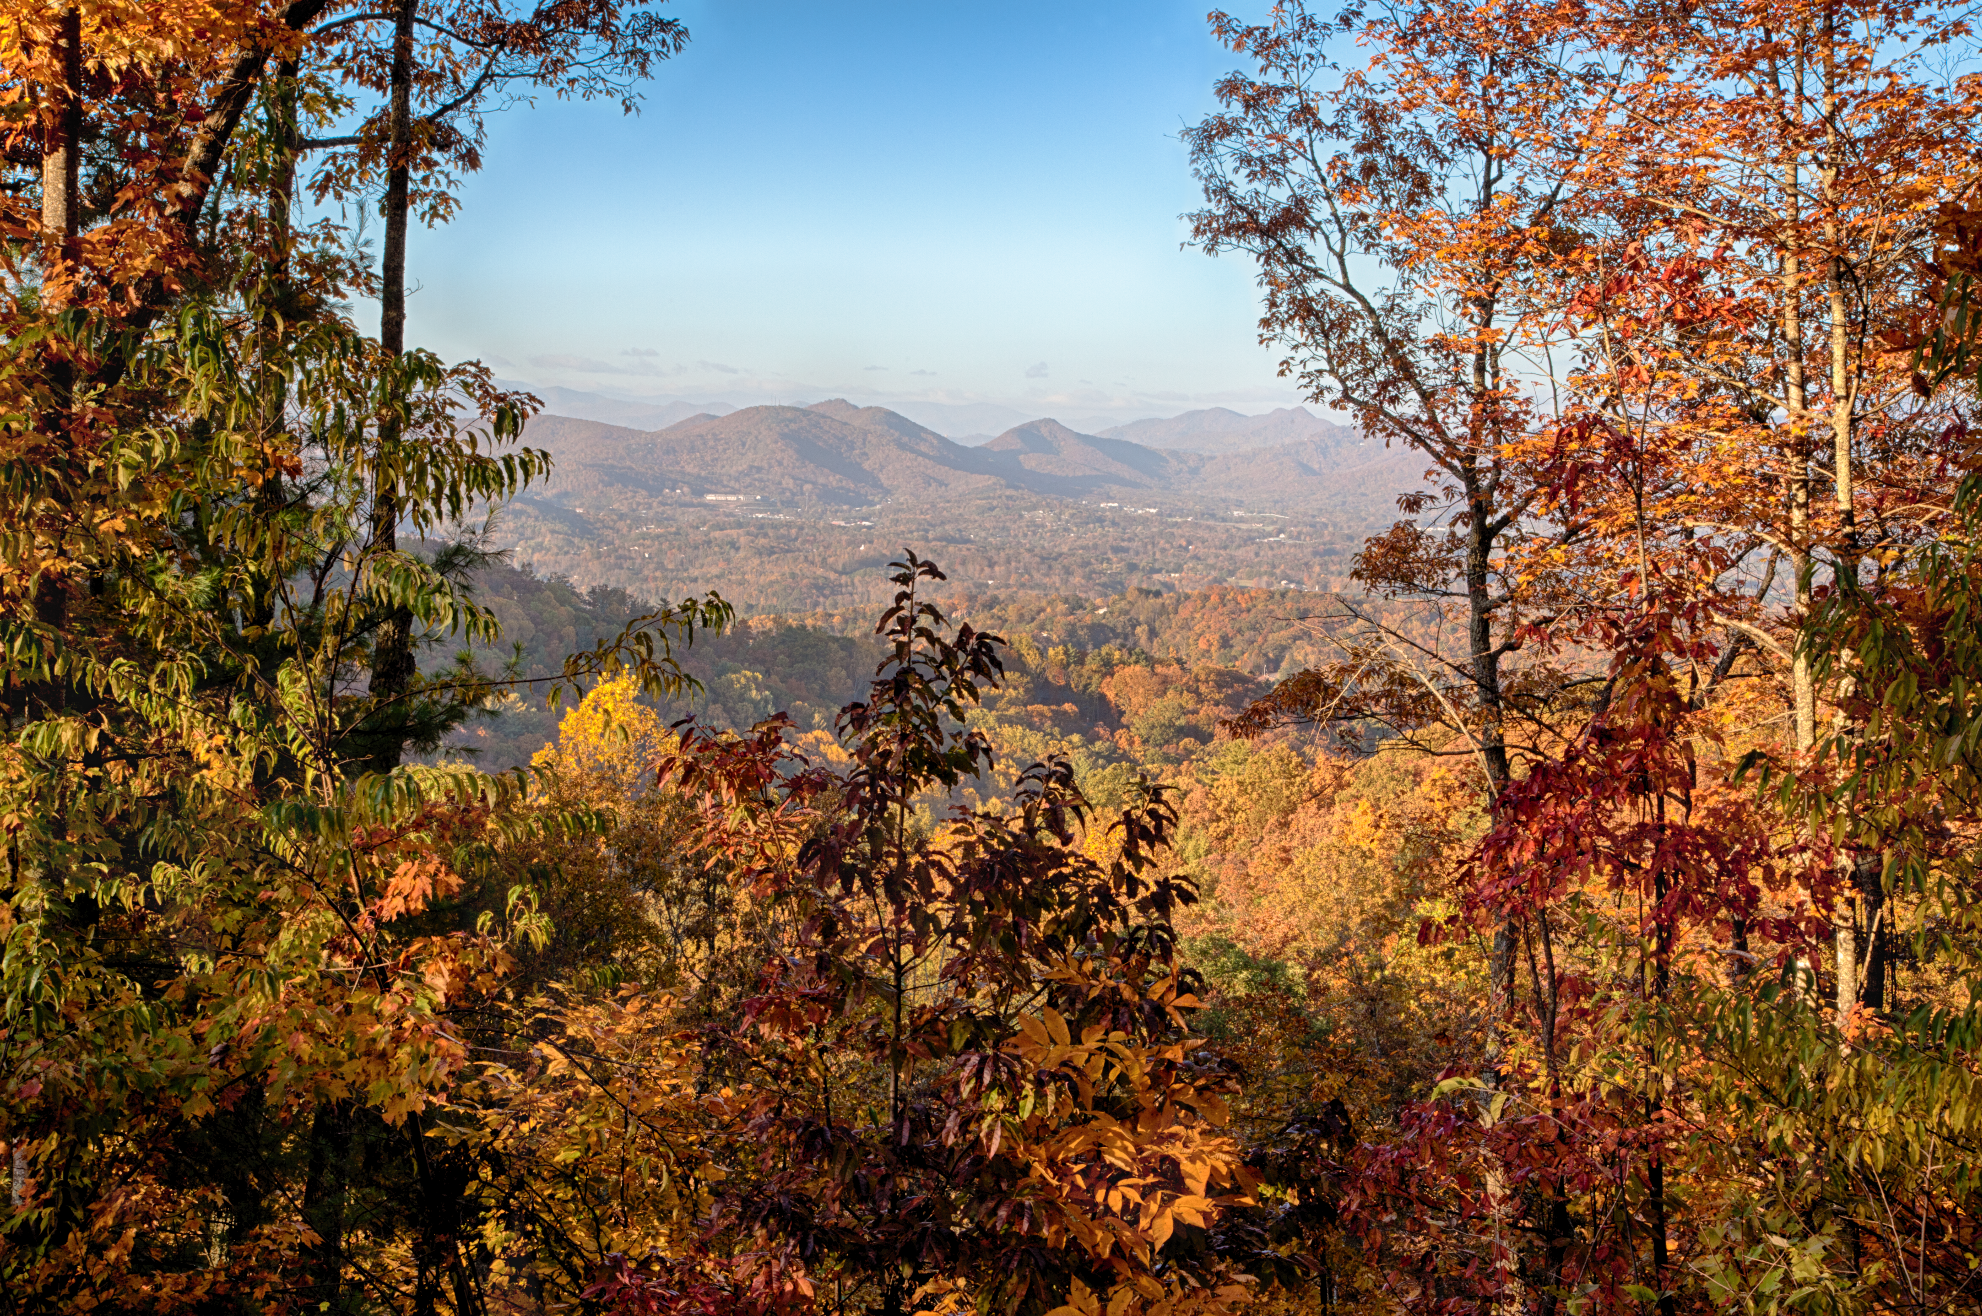 Ventana-Fall-Mountain-Views